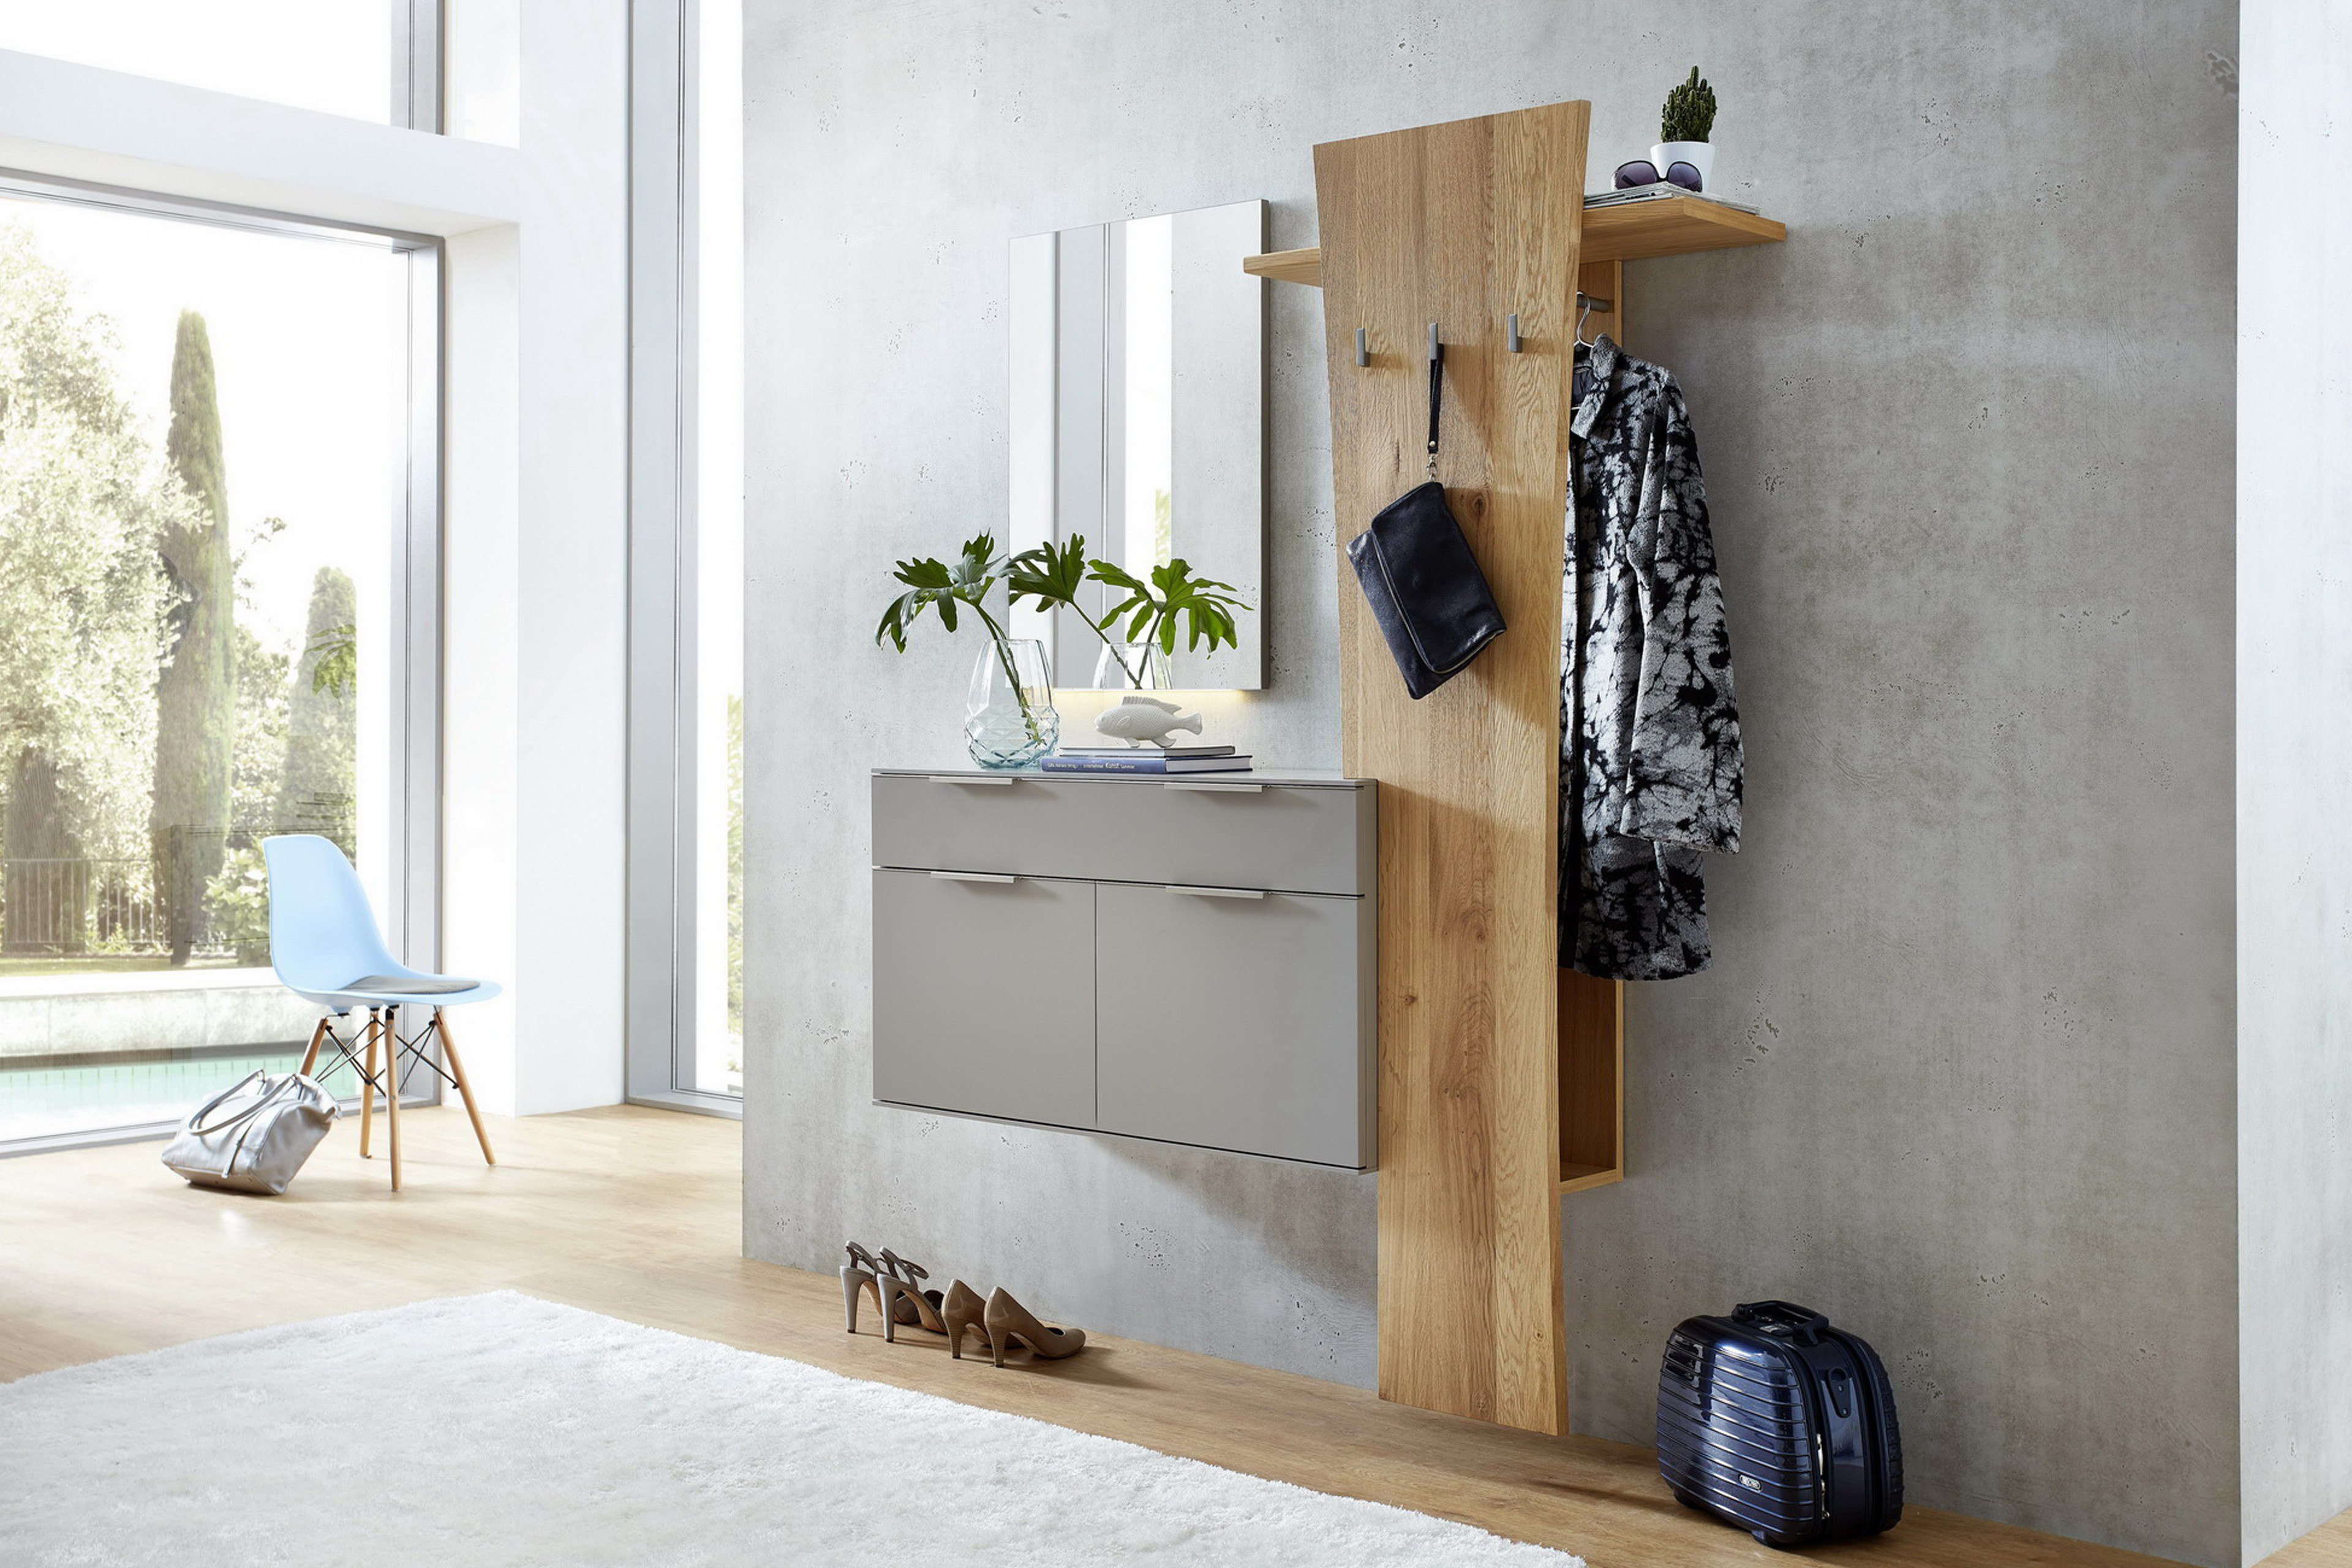 flur garderobe ber eck ber eck garderobe flur minimalistisch eingang frankfurt am main von. Black Bedroom Furniture Sets. Home Design Ideas